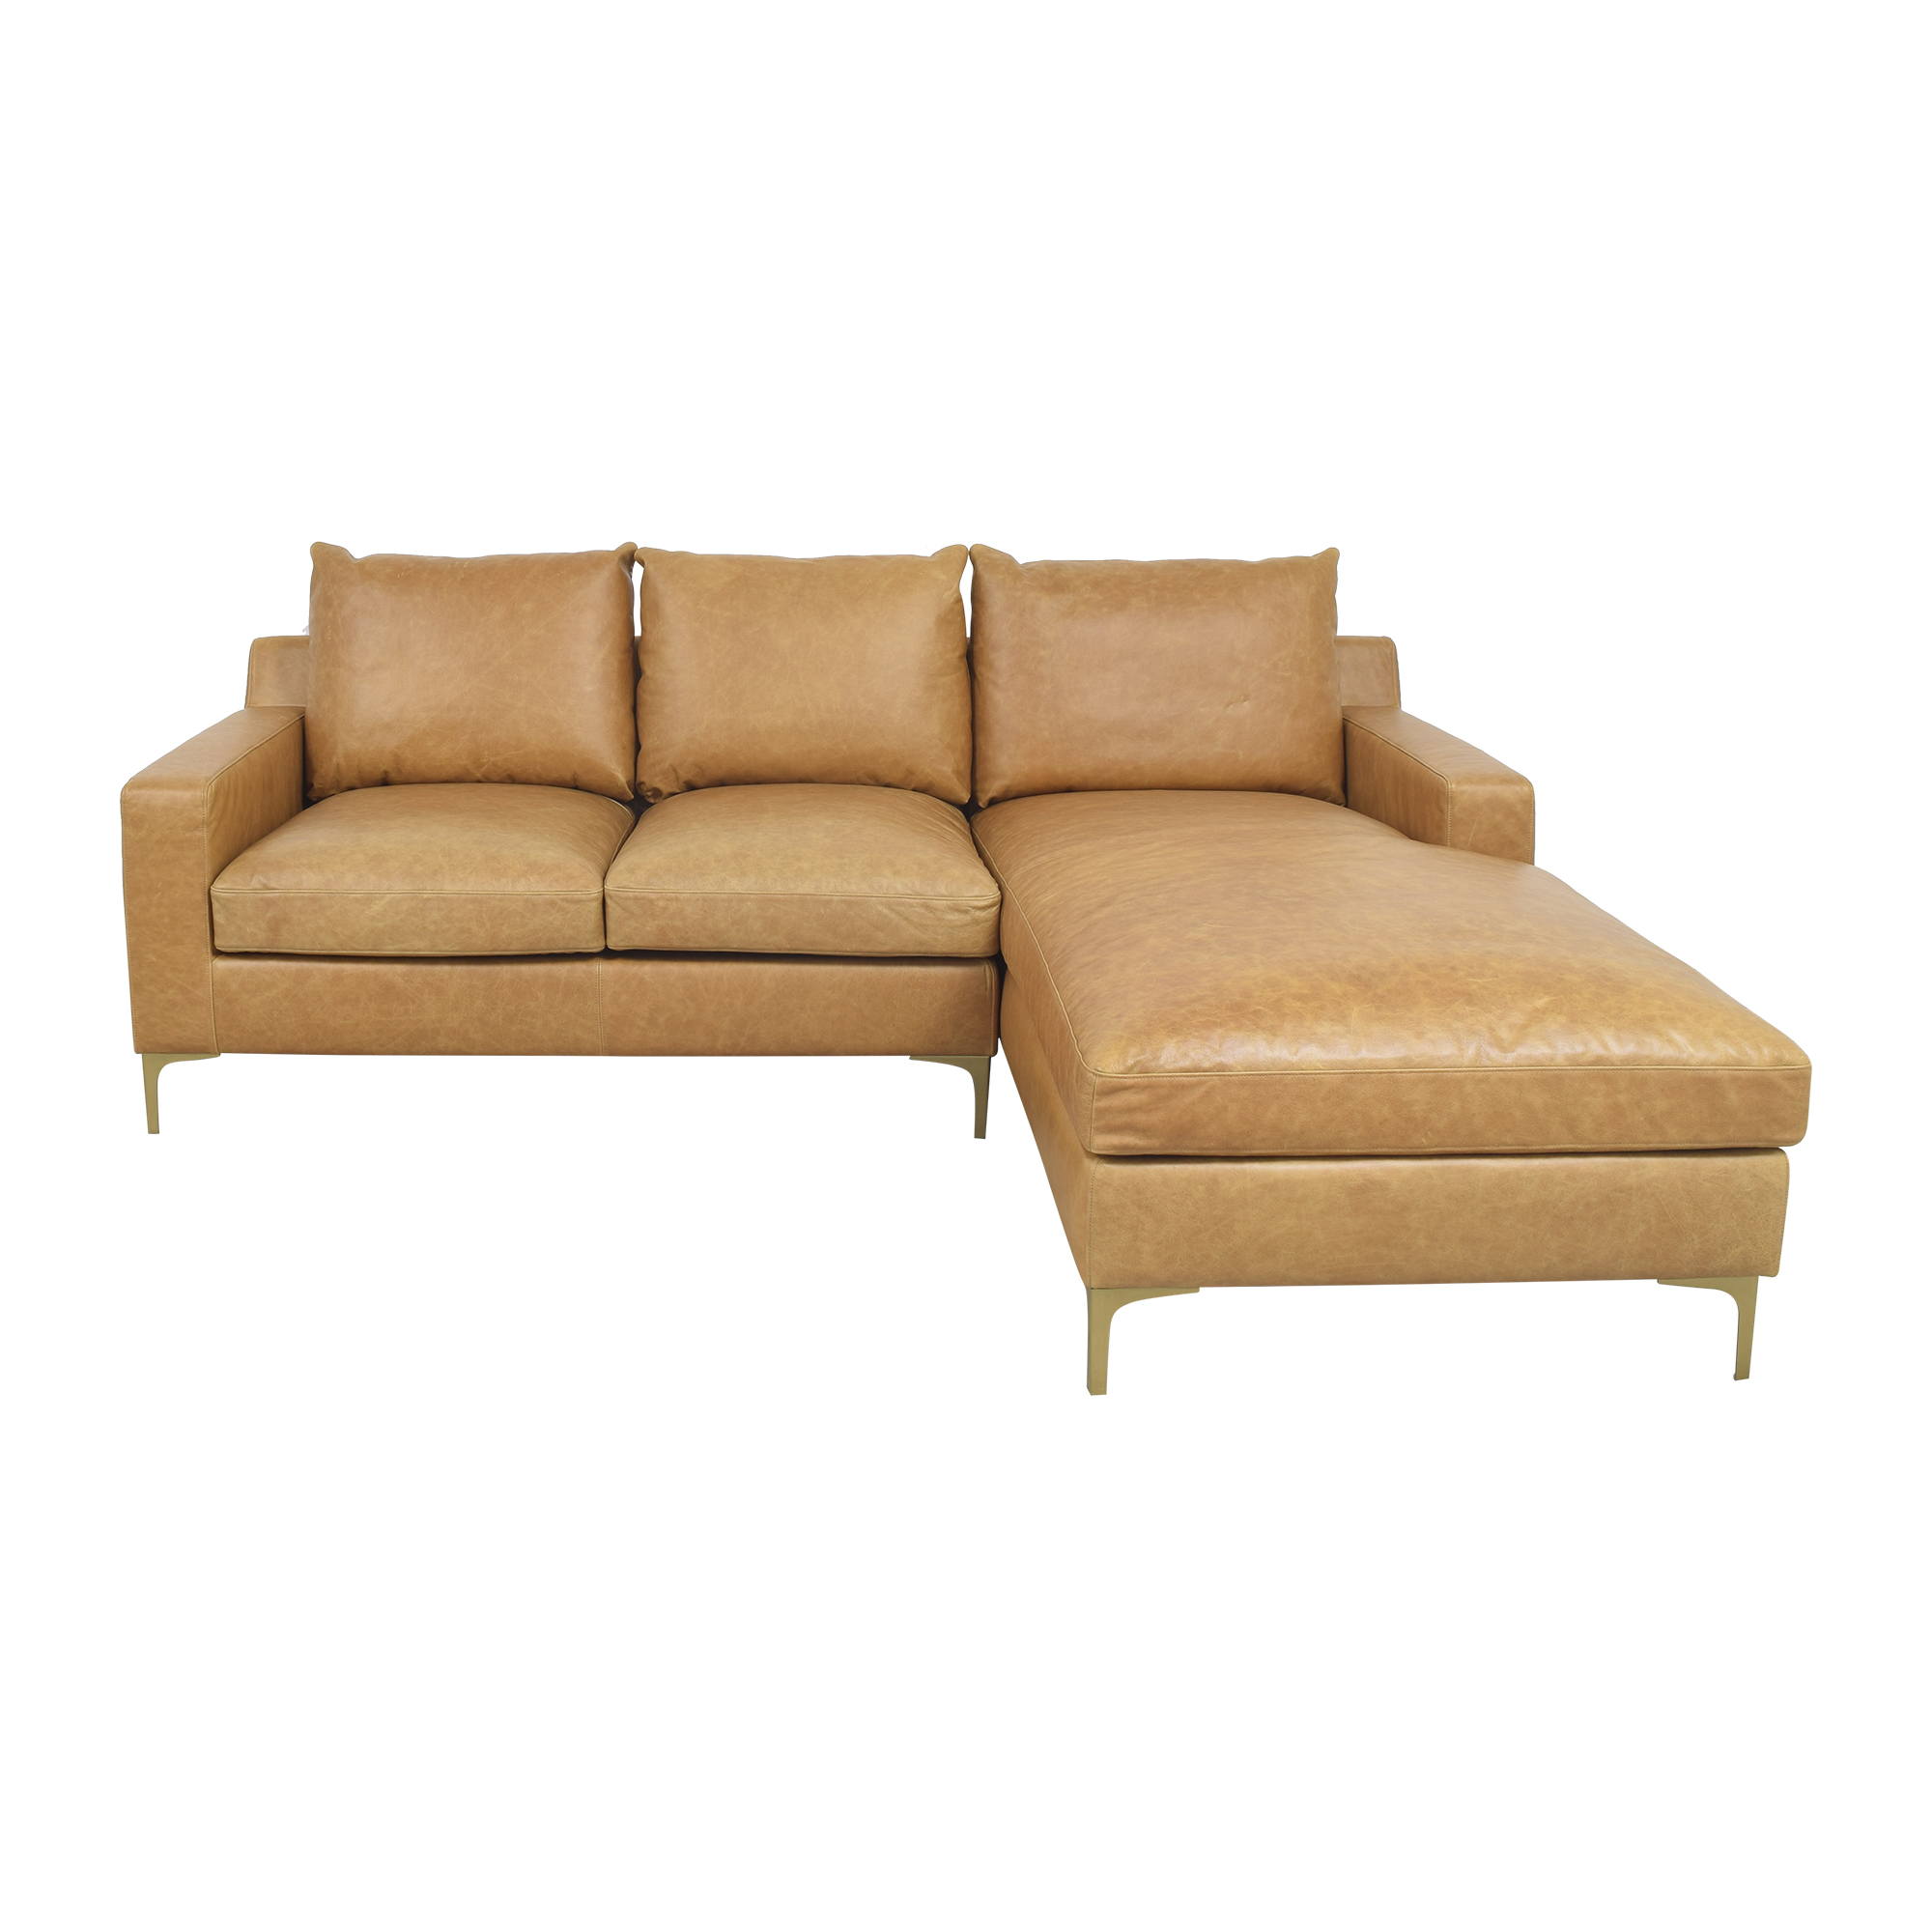 Interior Define Interior Define Sloan Sectional Sofa with Chaise price